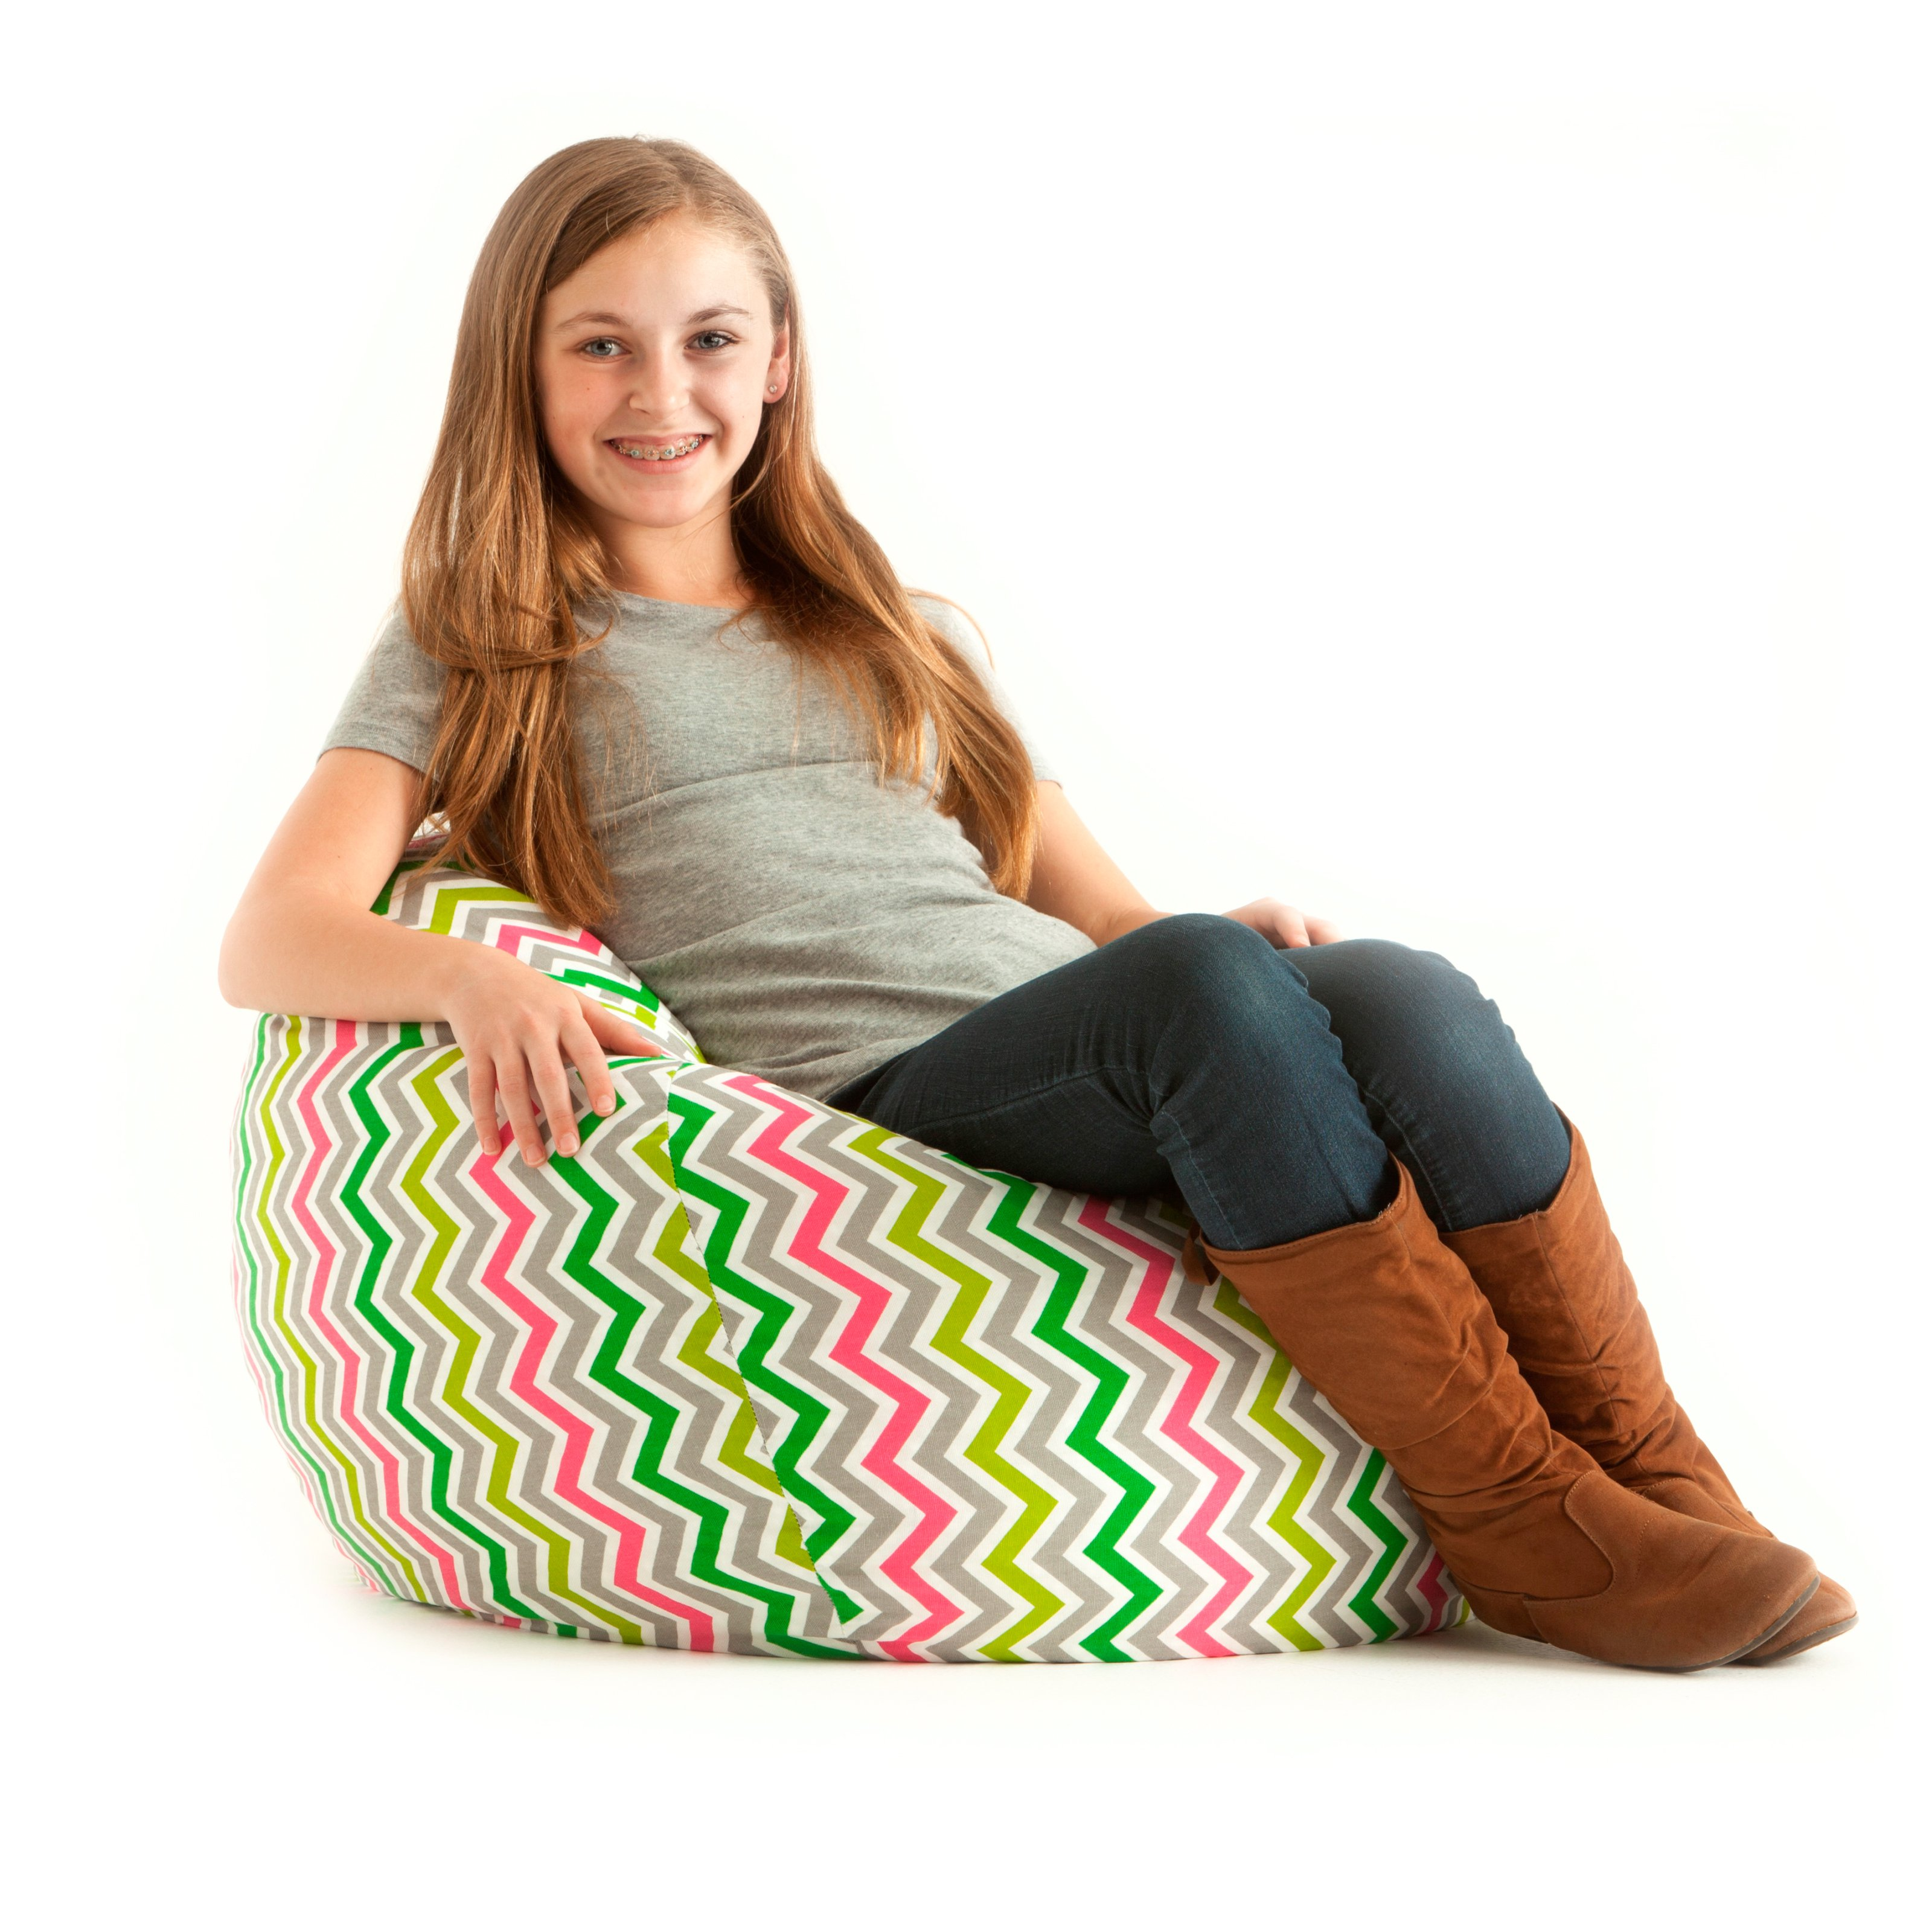 Comfort Research Medium Twill Lounger Bean Bag Chair - Zoom Zoom Chartreuse / Pink